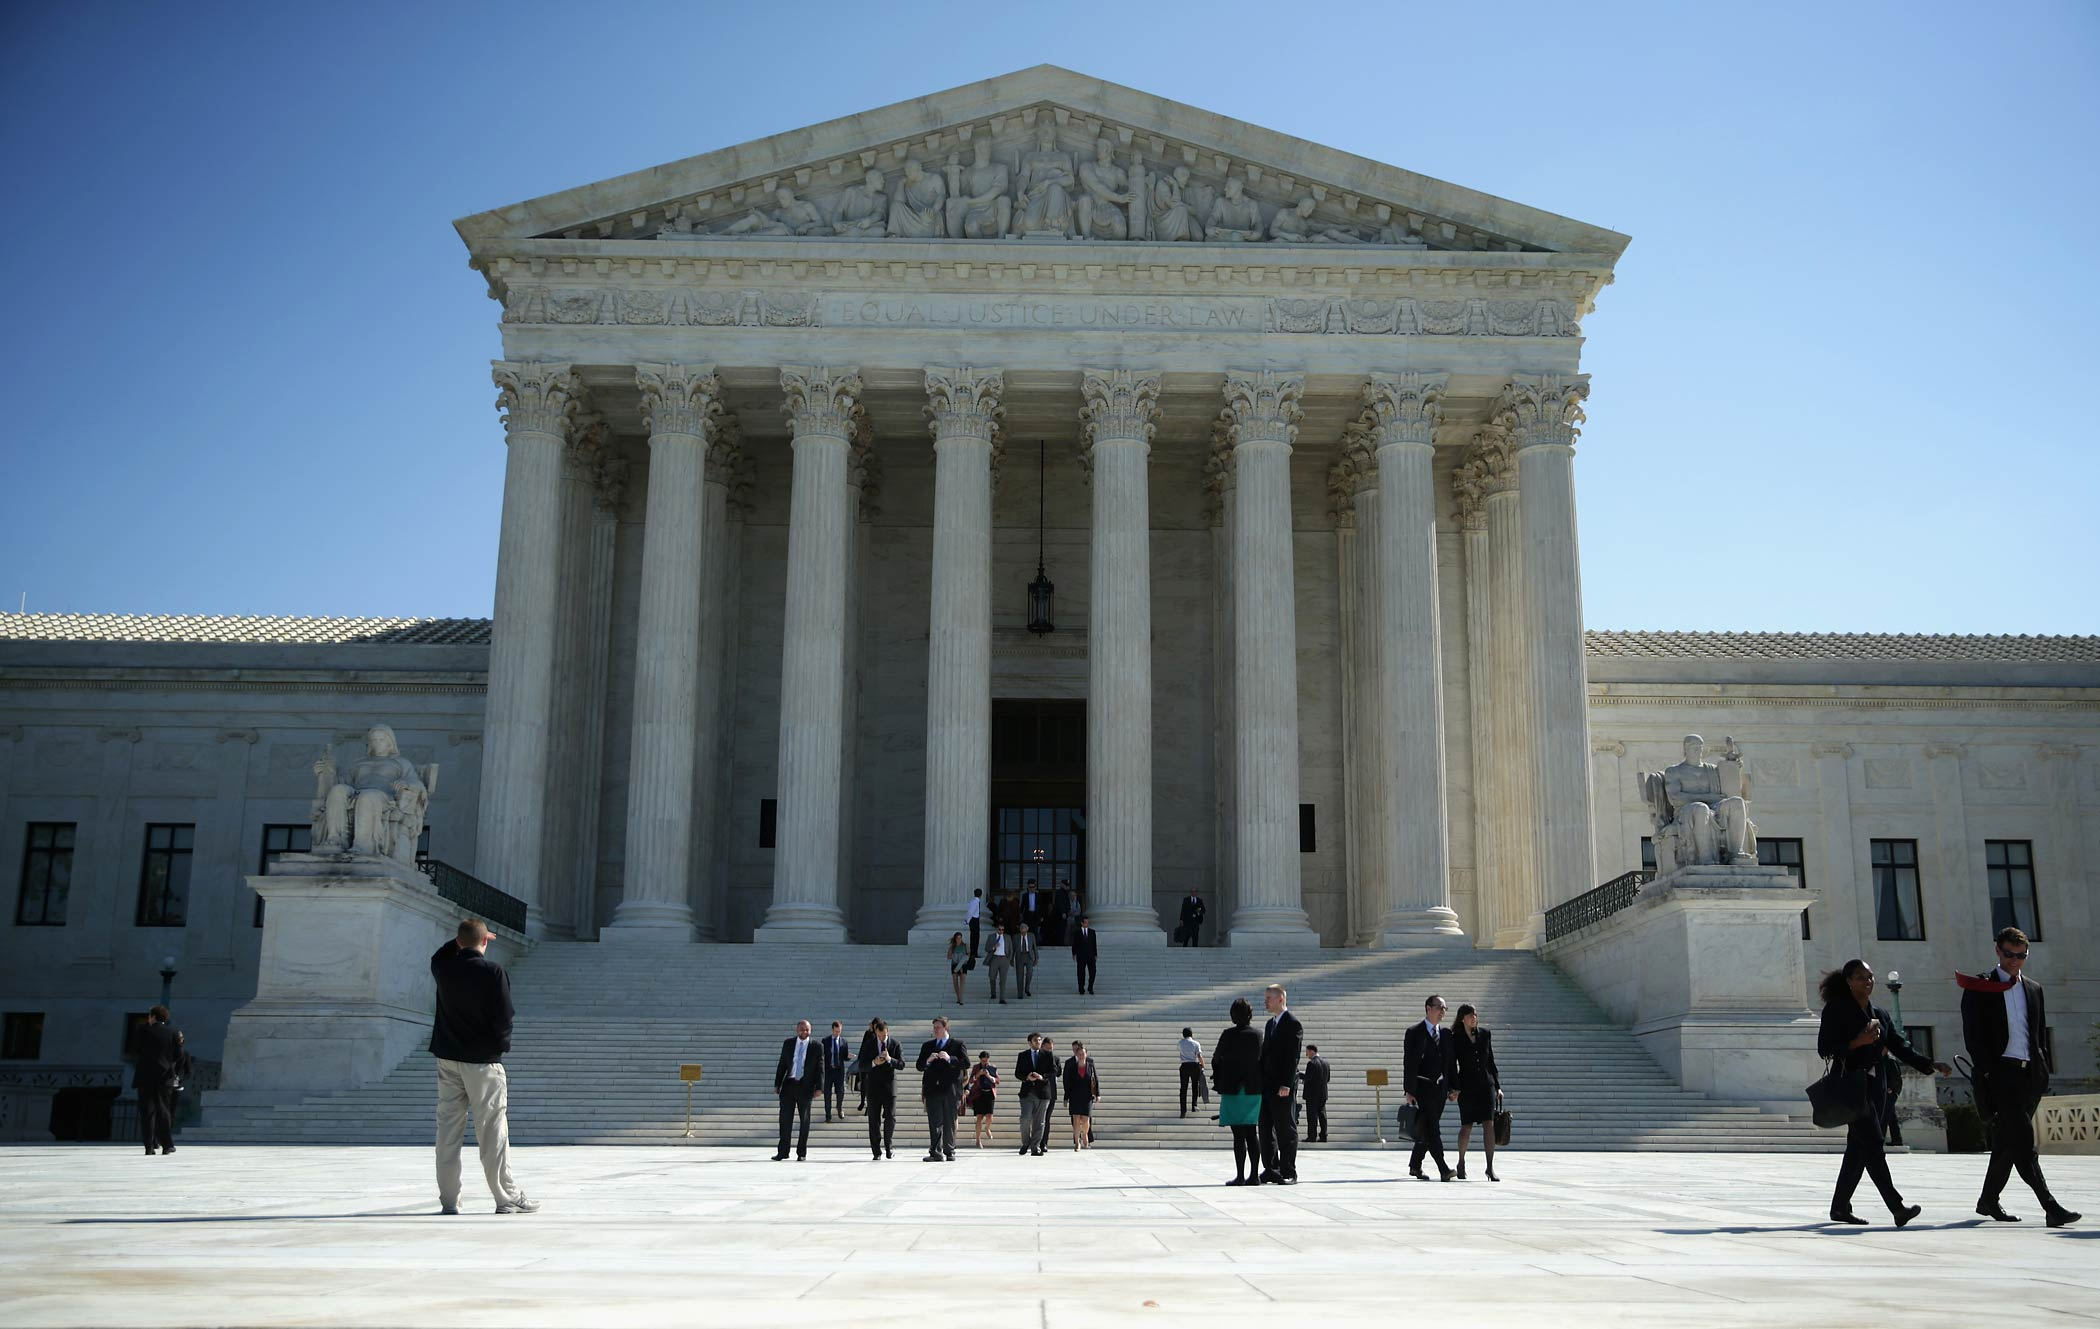 People come out from the U.S. Supreme Court on Oct. 6, 2014 in Washington, DC.